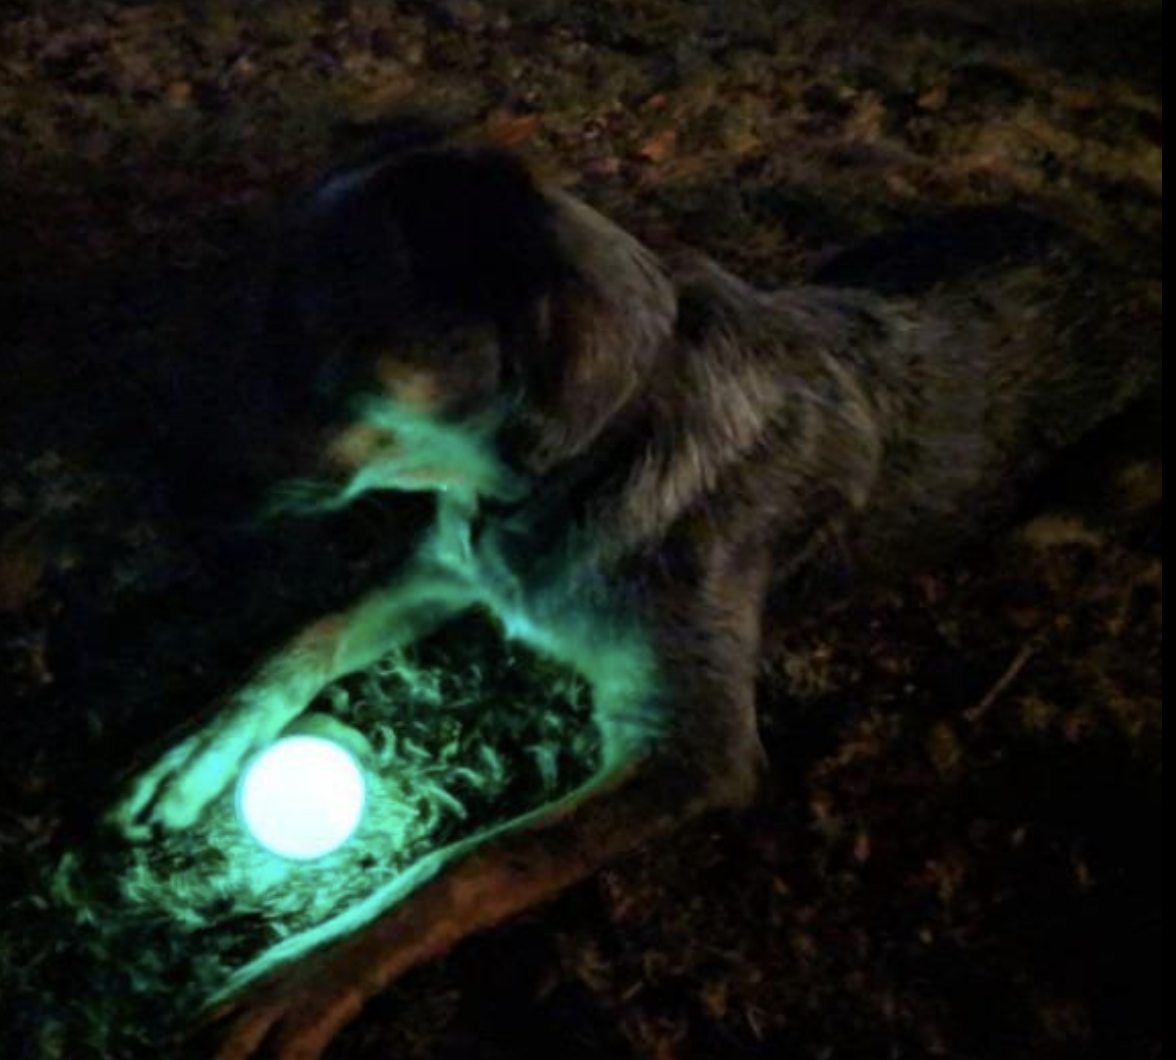 Dog playing with glow-in-the-dark ball